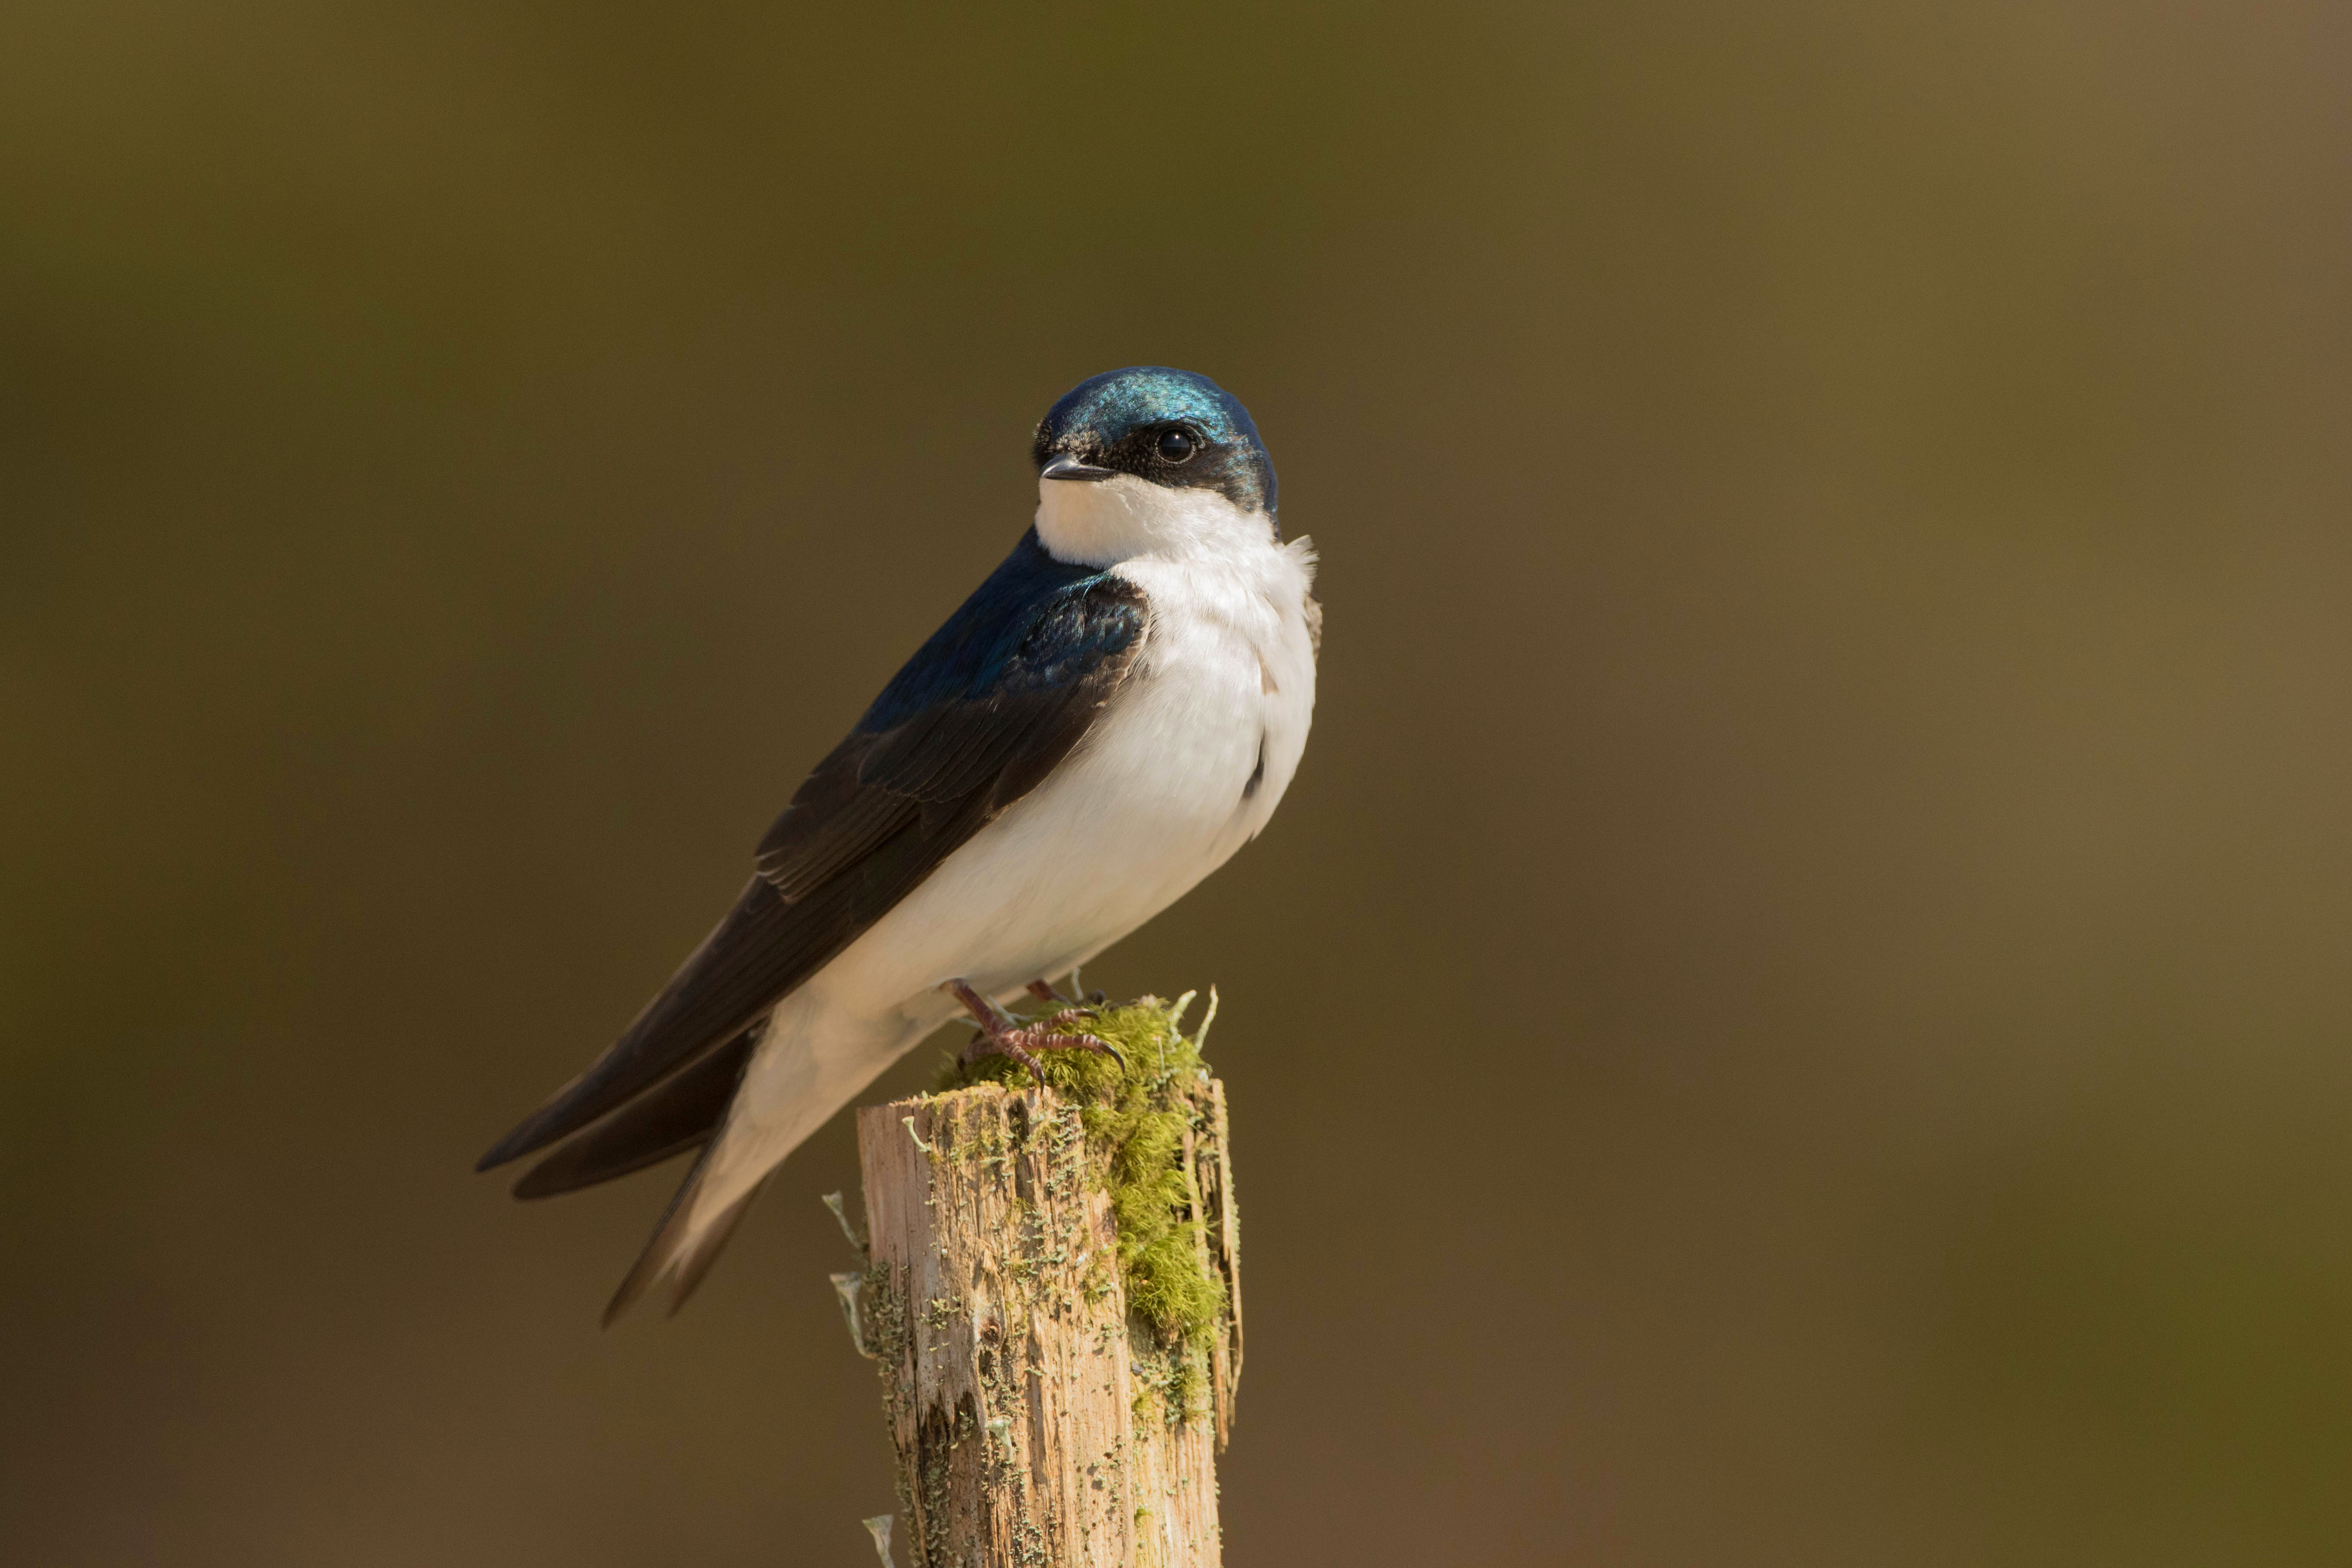 Tree swallows are aerial insectivores — meaning they almost exclusively eat flying insects. Pesticides entering waterways and killing insect larva, along with an unavailability of nesting cavities, has caused this species to decline significantly since the 1960s. Building a nest box and placing it in an open area is one way to help tree swallows! (Brendan Kelly)